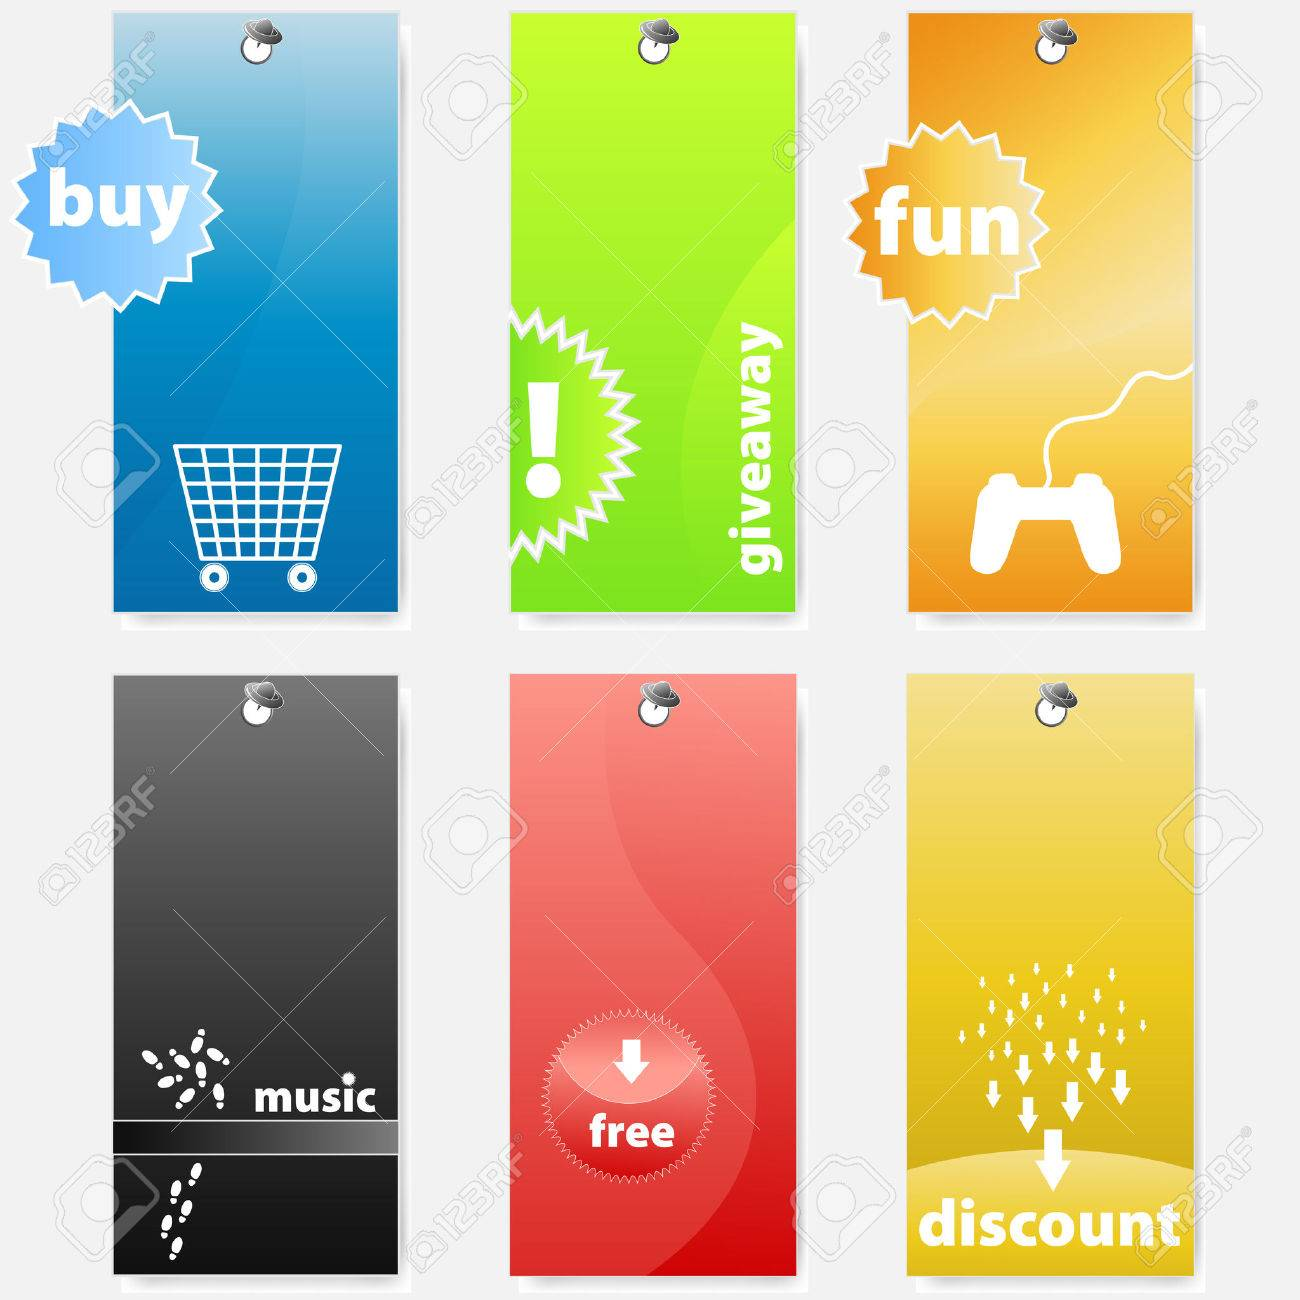 Vector illustrations of differently colored glossy shopping and music related web tags/labels. Stock Vector - 2639956